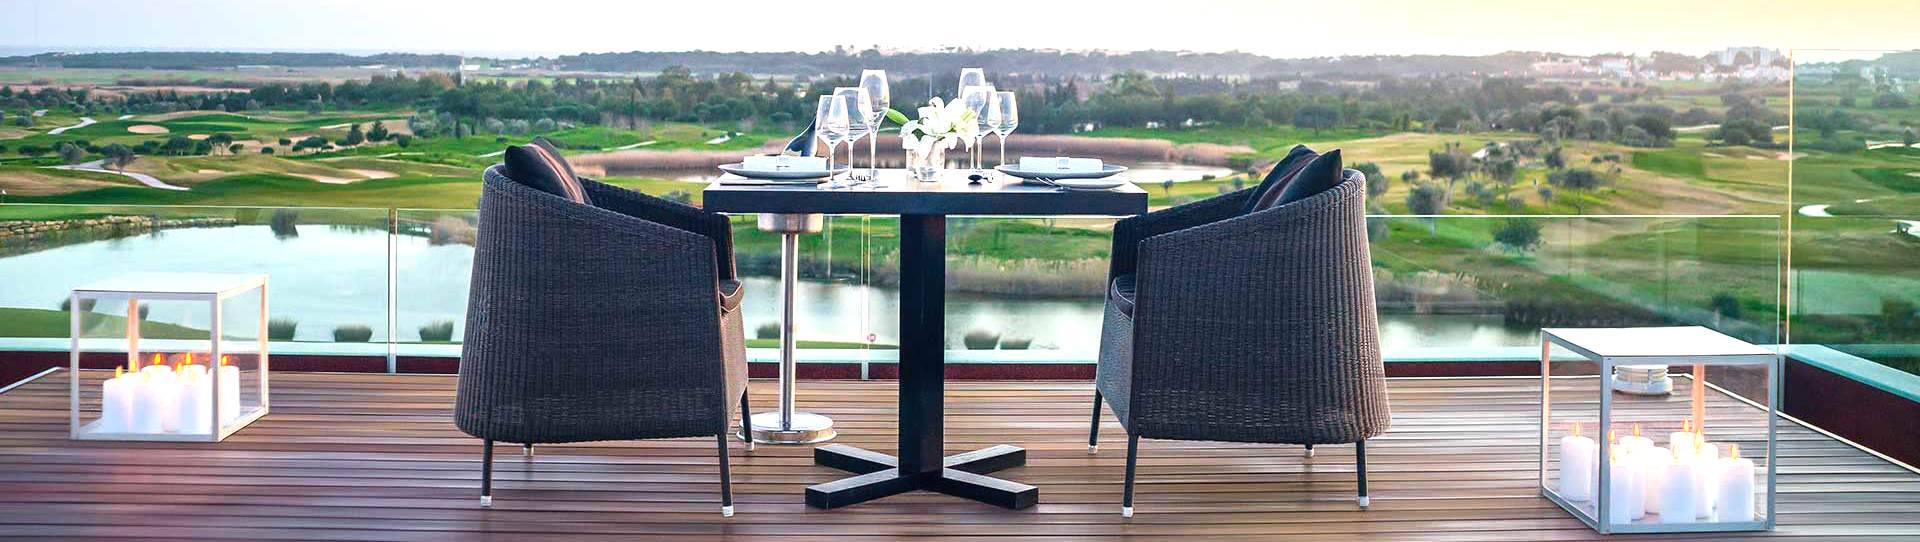 Anantara Vilamoura Algarve Resort - Photo 3